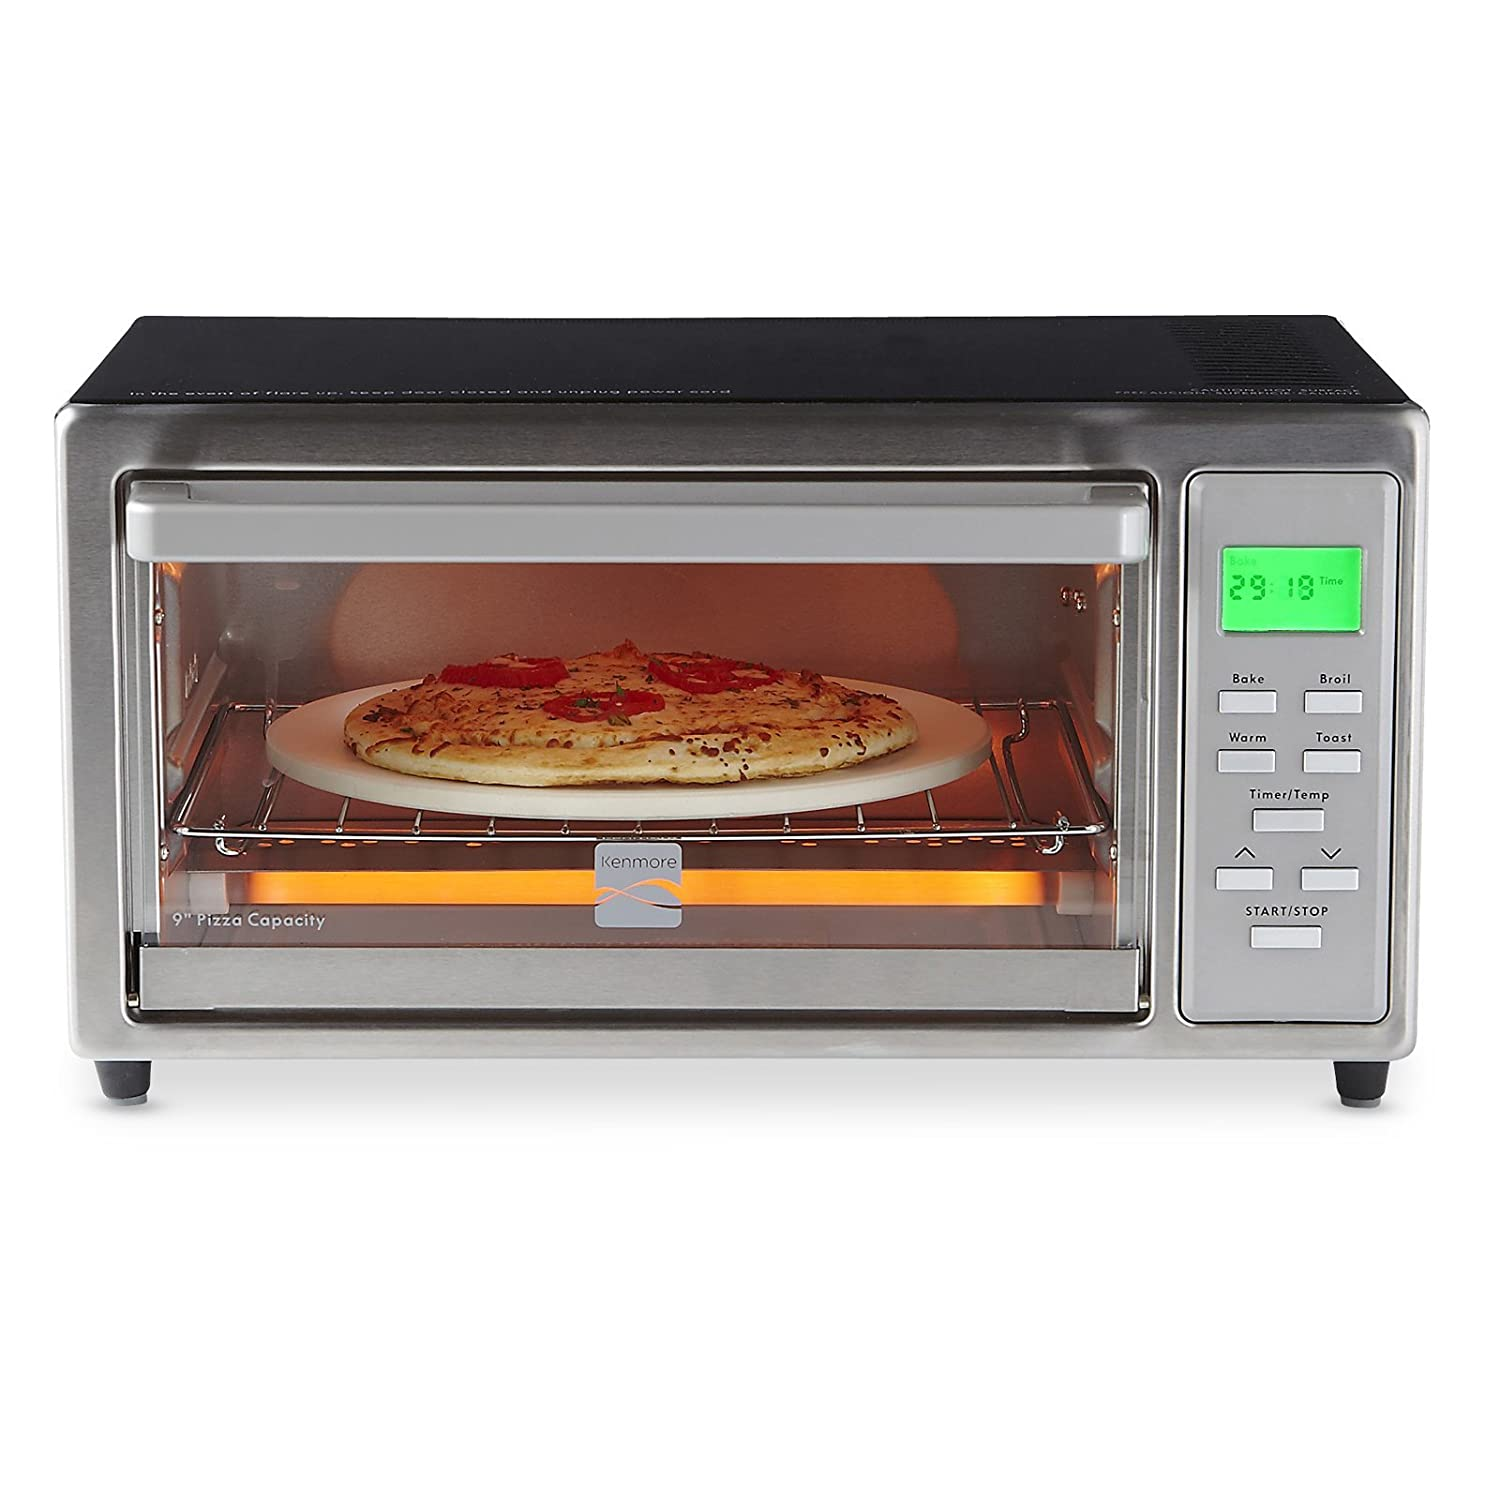 slice decker itm steel digital details oven stainless black toaster pizza about convection